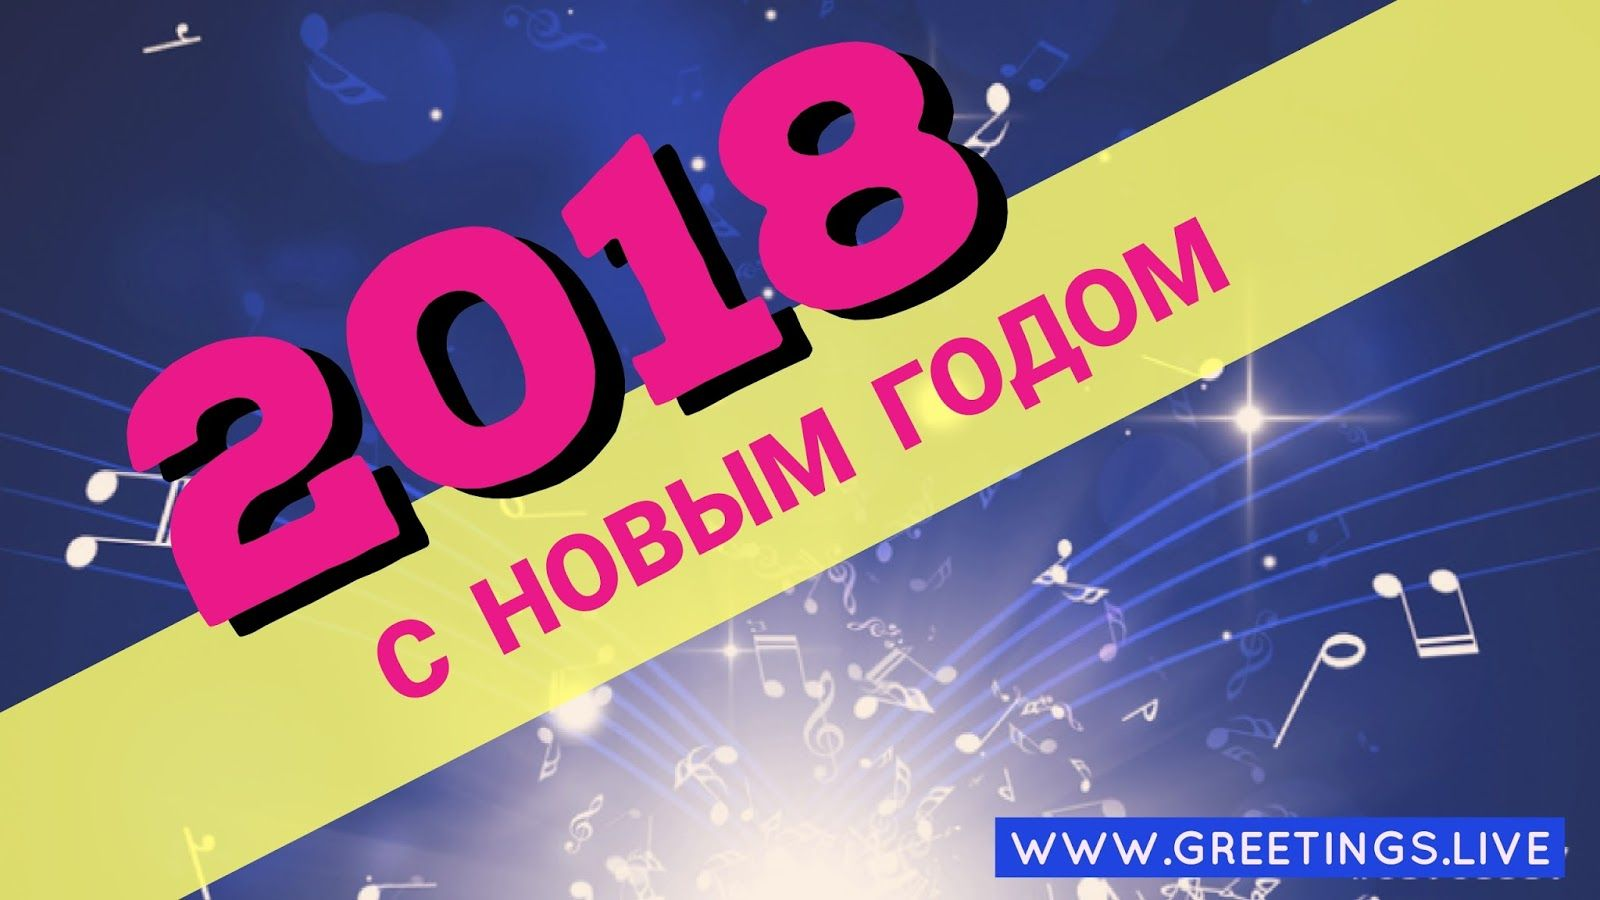 Happy new year 2018 wishes in russian languageg greetings explore russian language and more kristyandbryce Gallery